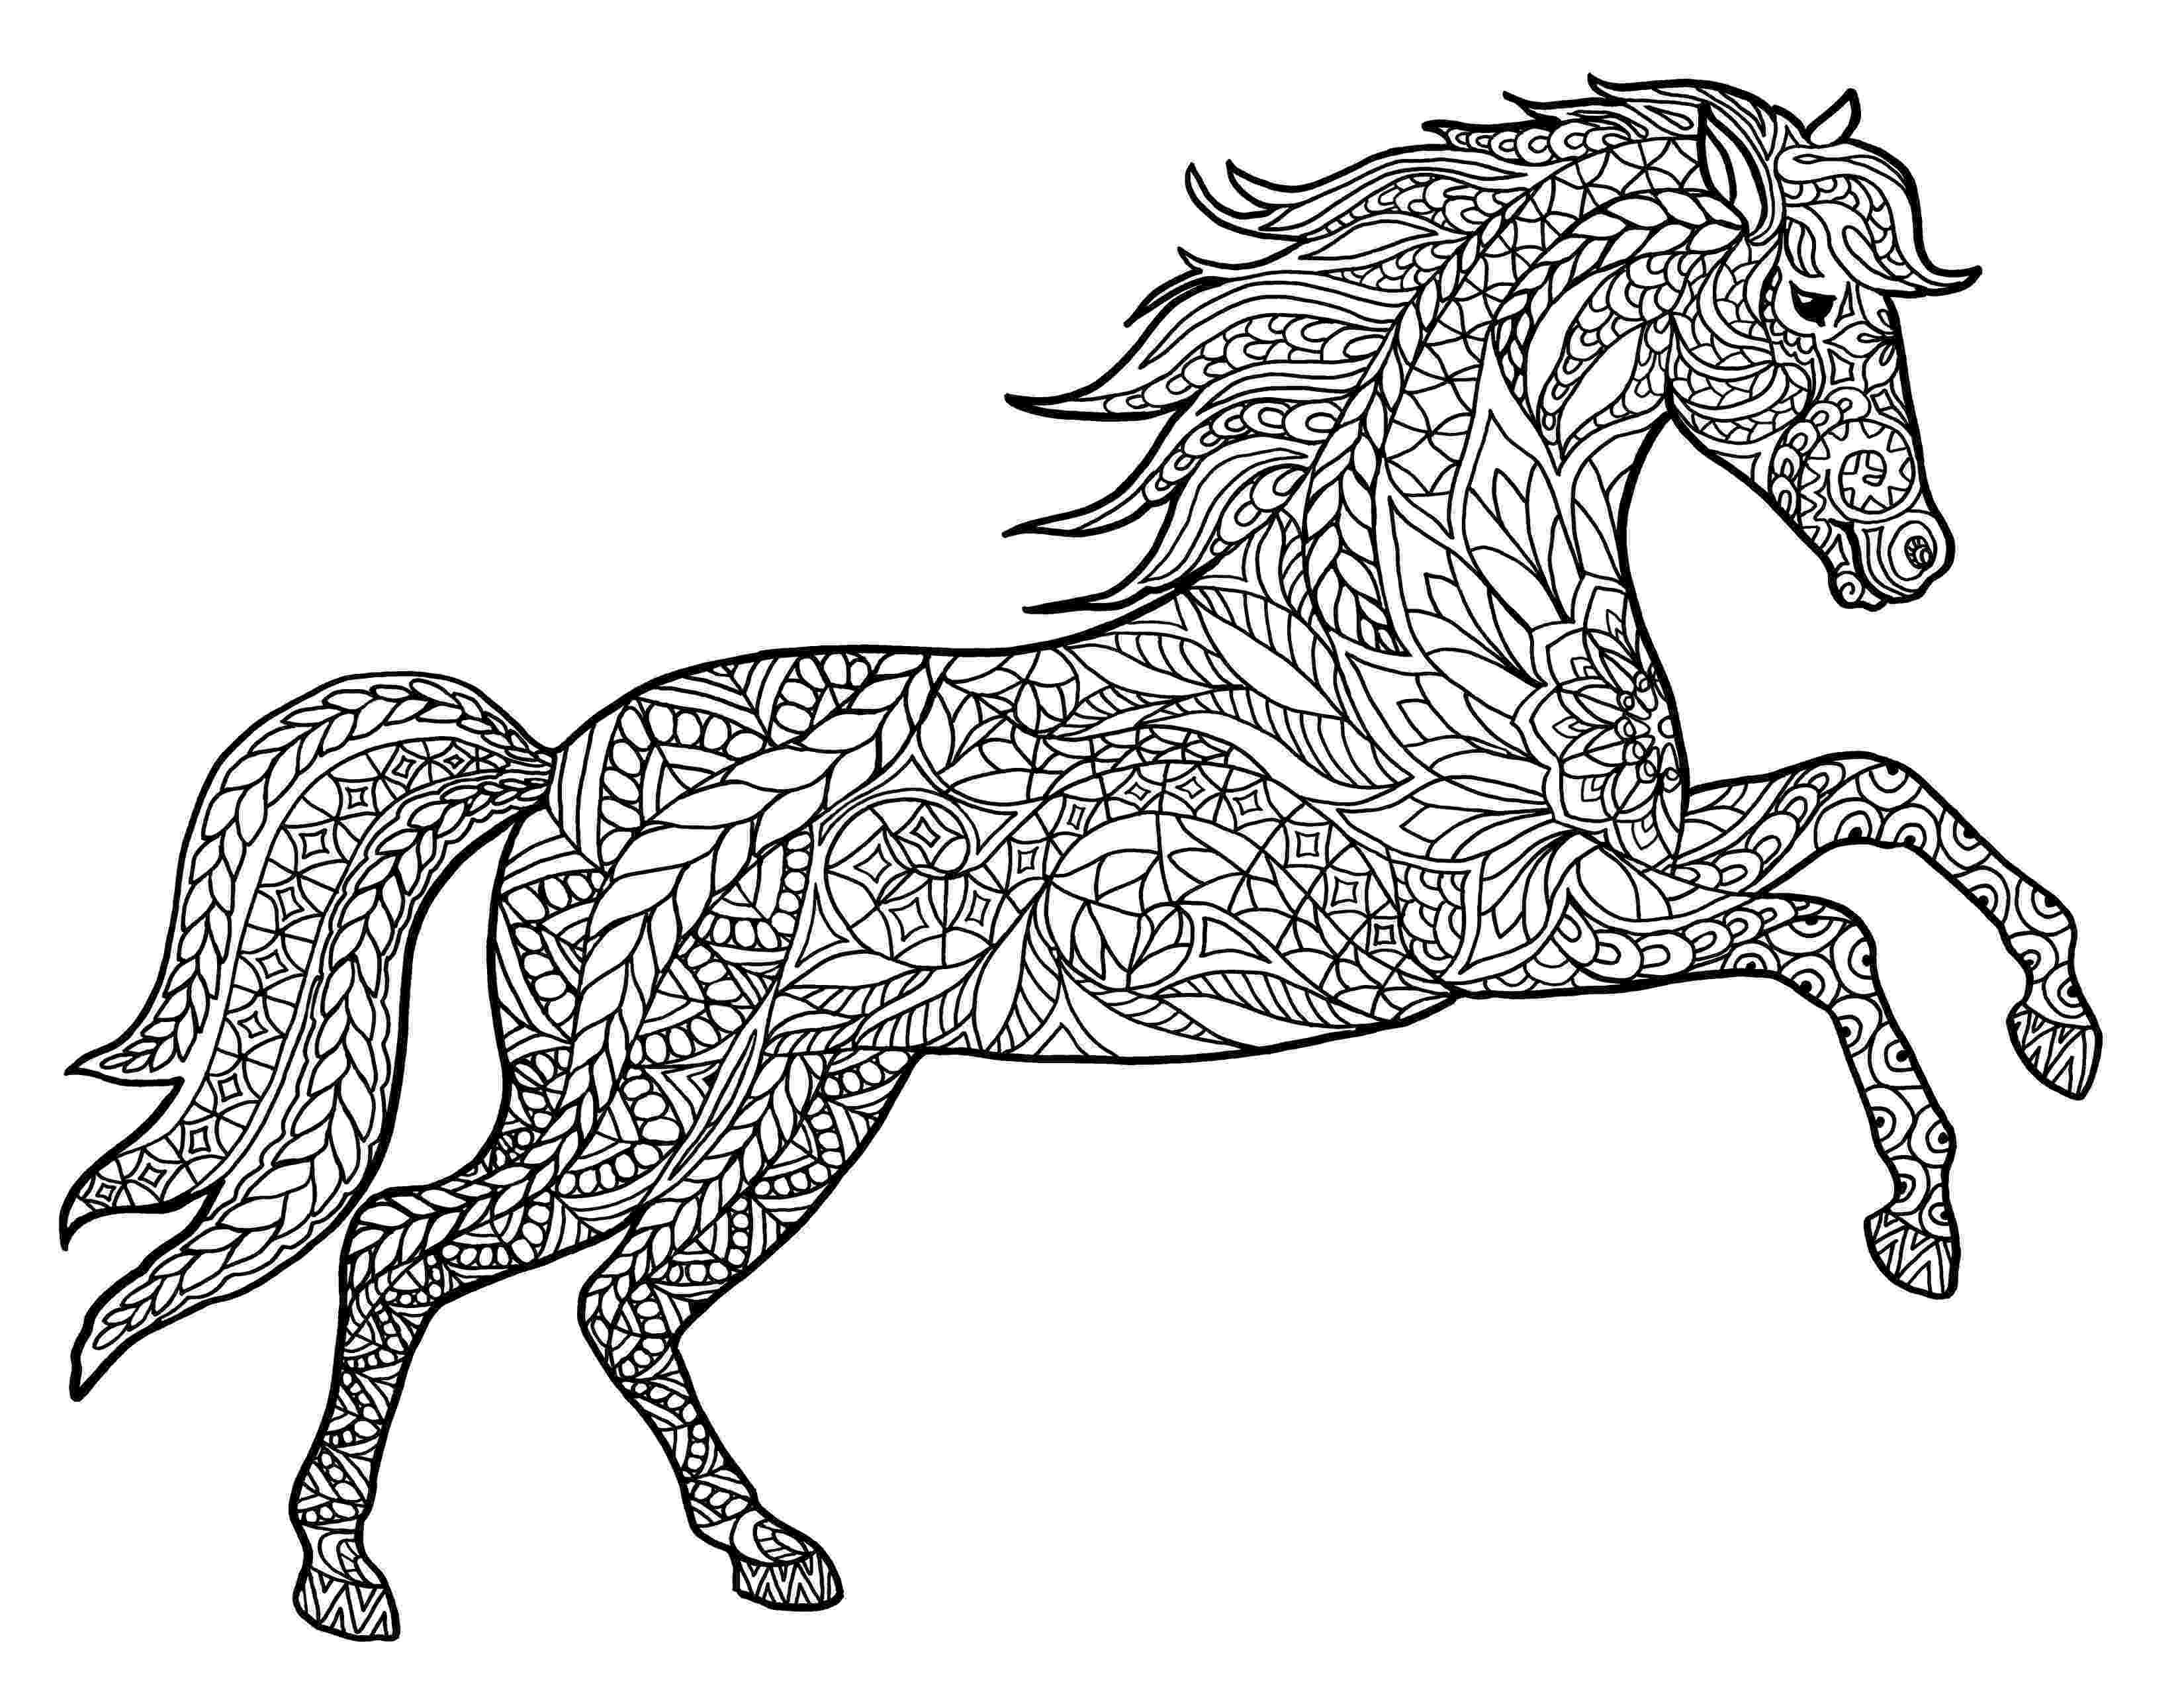 printable horse coloring pages for adults horse coloring pages for adults best coloring pages for kids pages for adults horse printable coloring